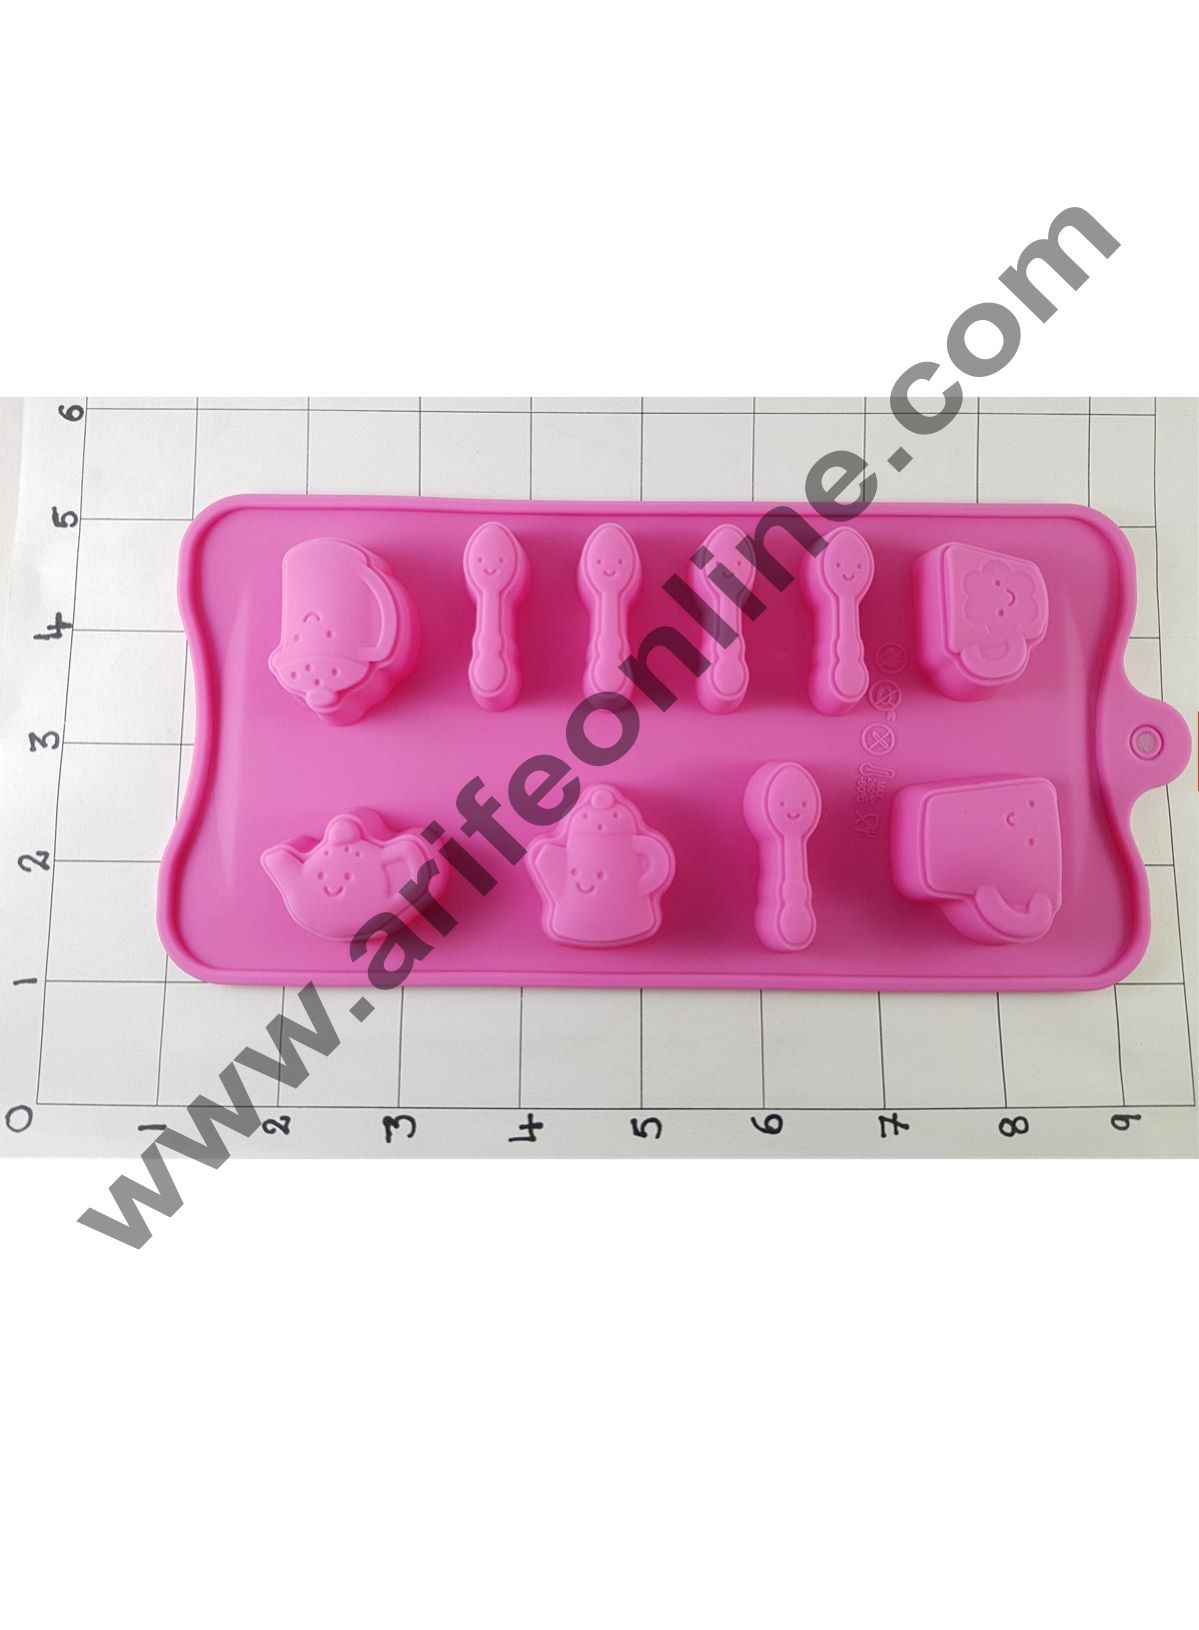 Cake Decor Silicon 10 Cavity Babys Spoon,Milk Bottle Shapes Design Chocolate Mould, Ice Mould, Chocolate Decorating Mould